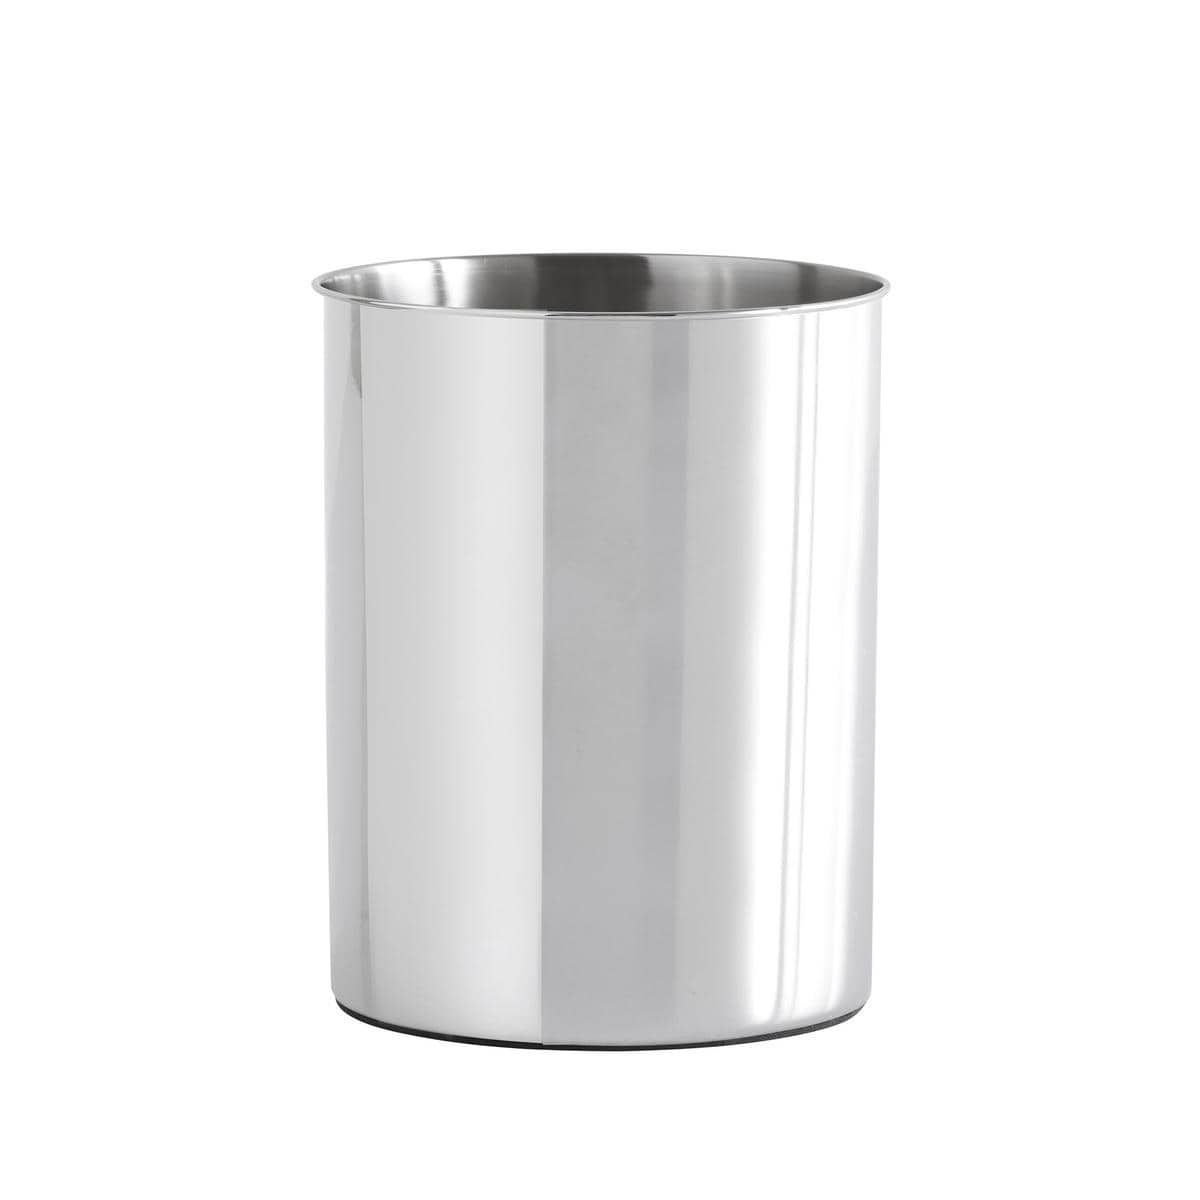 Croscill Alloy Waste Basket Brushed Nickel Bathroom Accessories Silver Products In 2019 Brushed Nickel Bathroom Accessories Recycling Bins Bathroom Coll